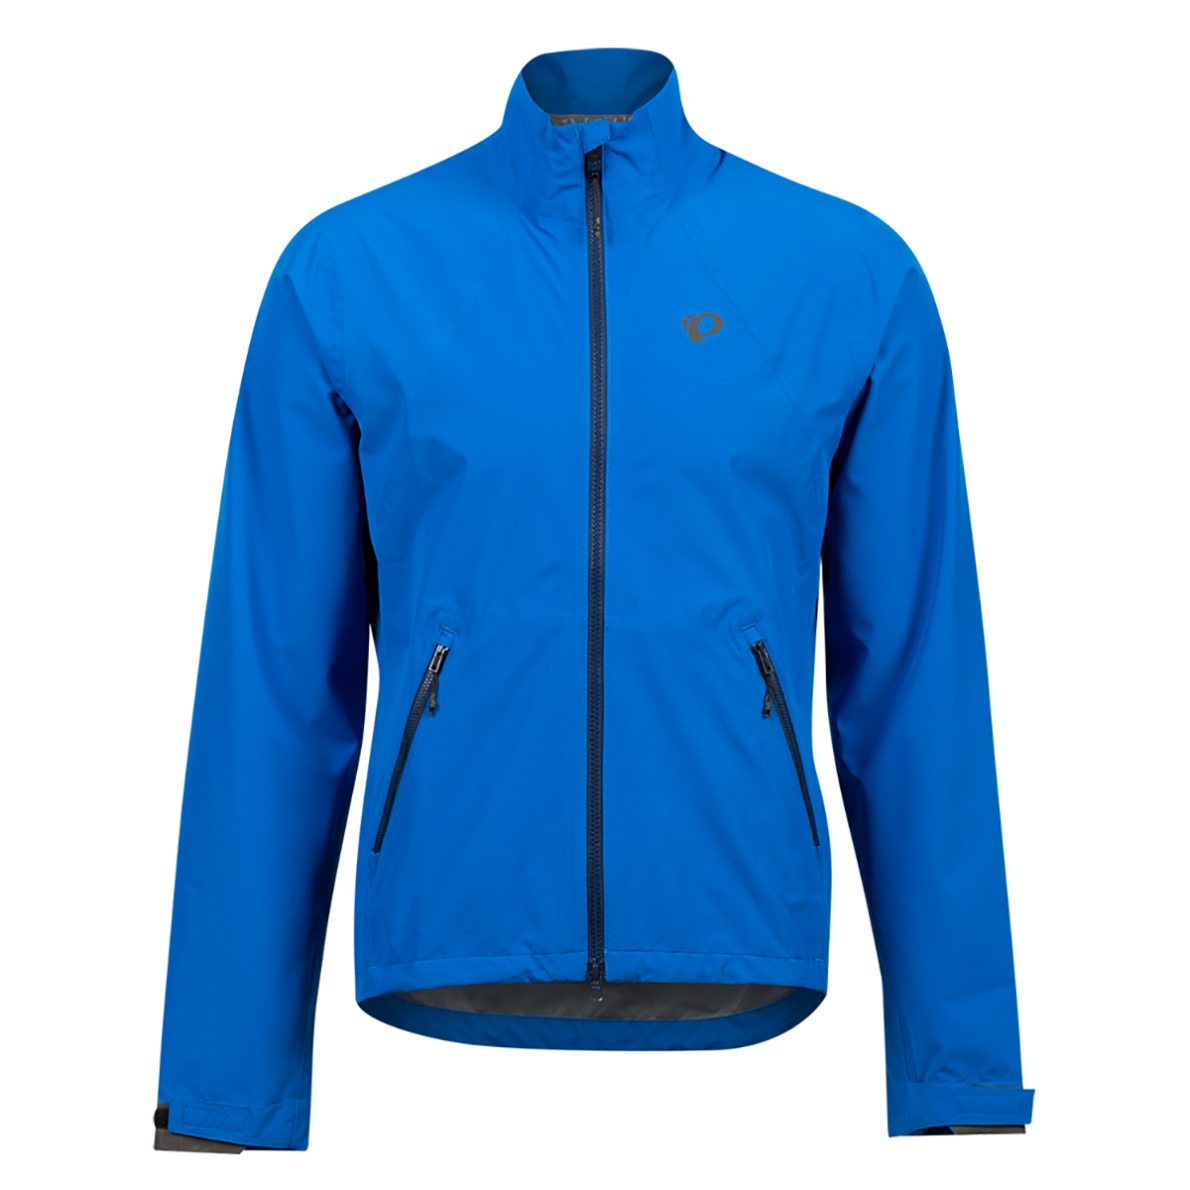 Monsoon Wxb Jacket